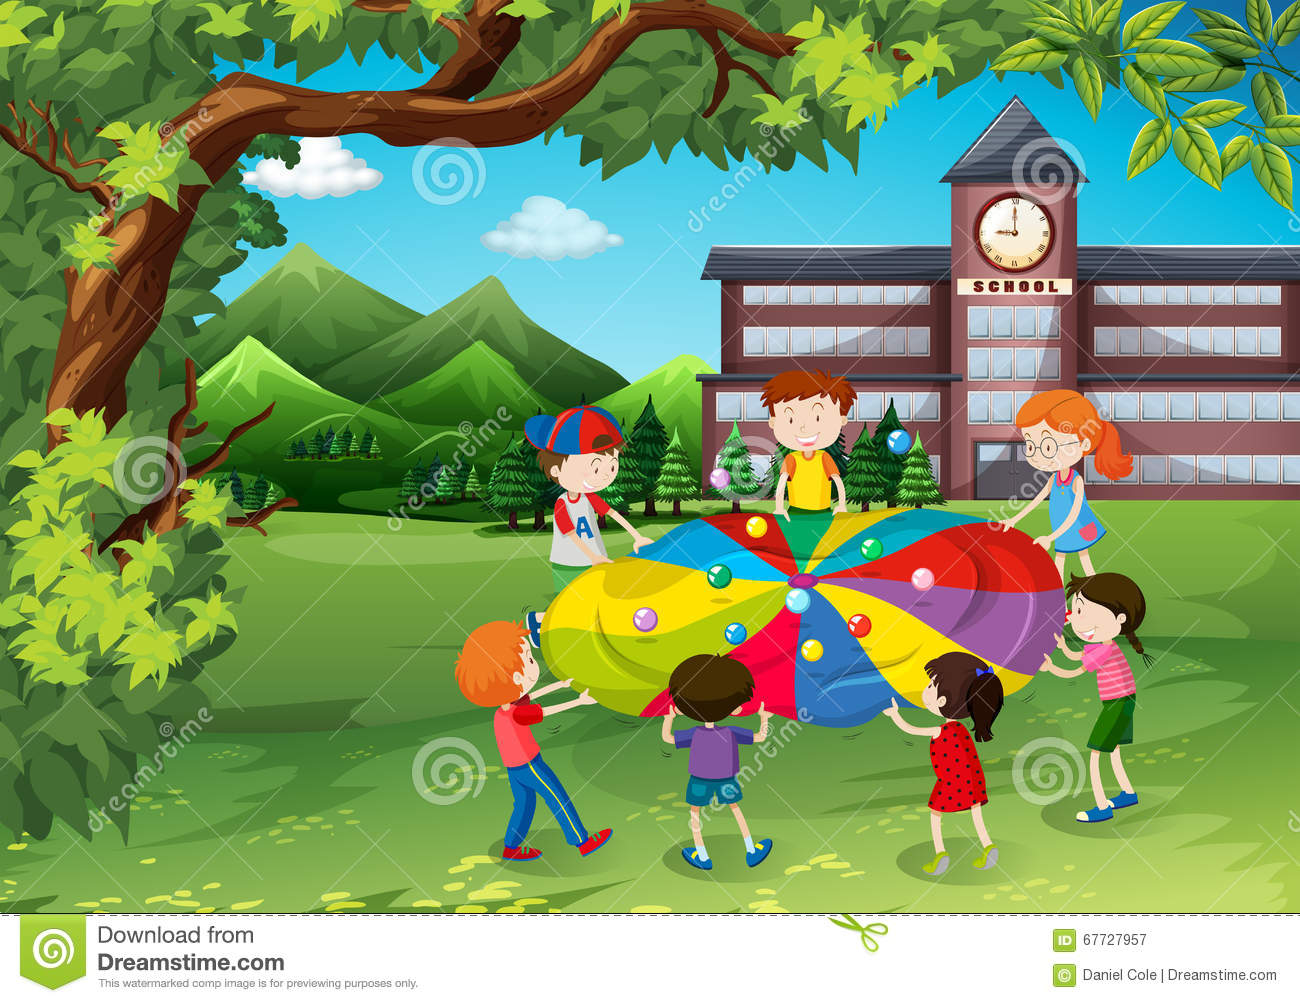 Playing garden drawing for kids - Children Playing In The School Yard Stock Vector